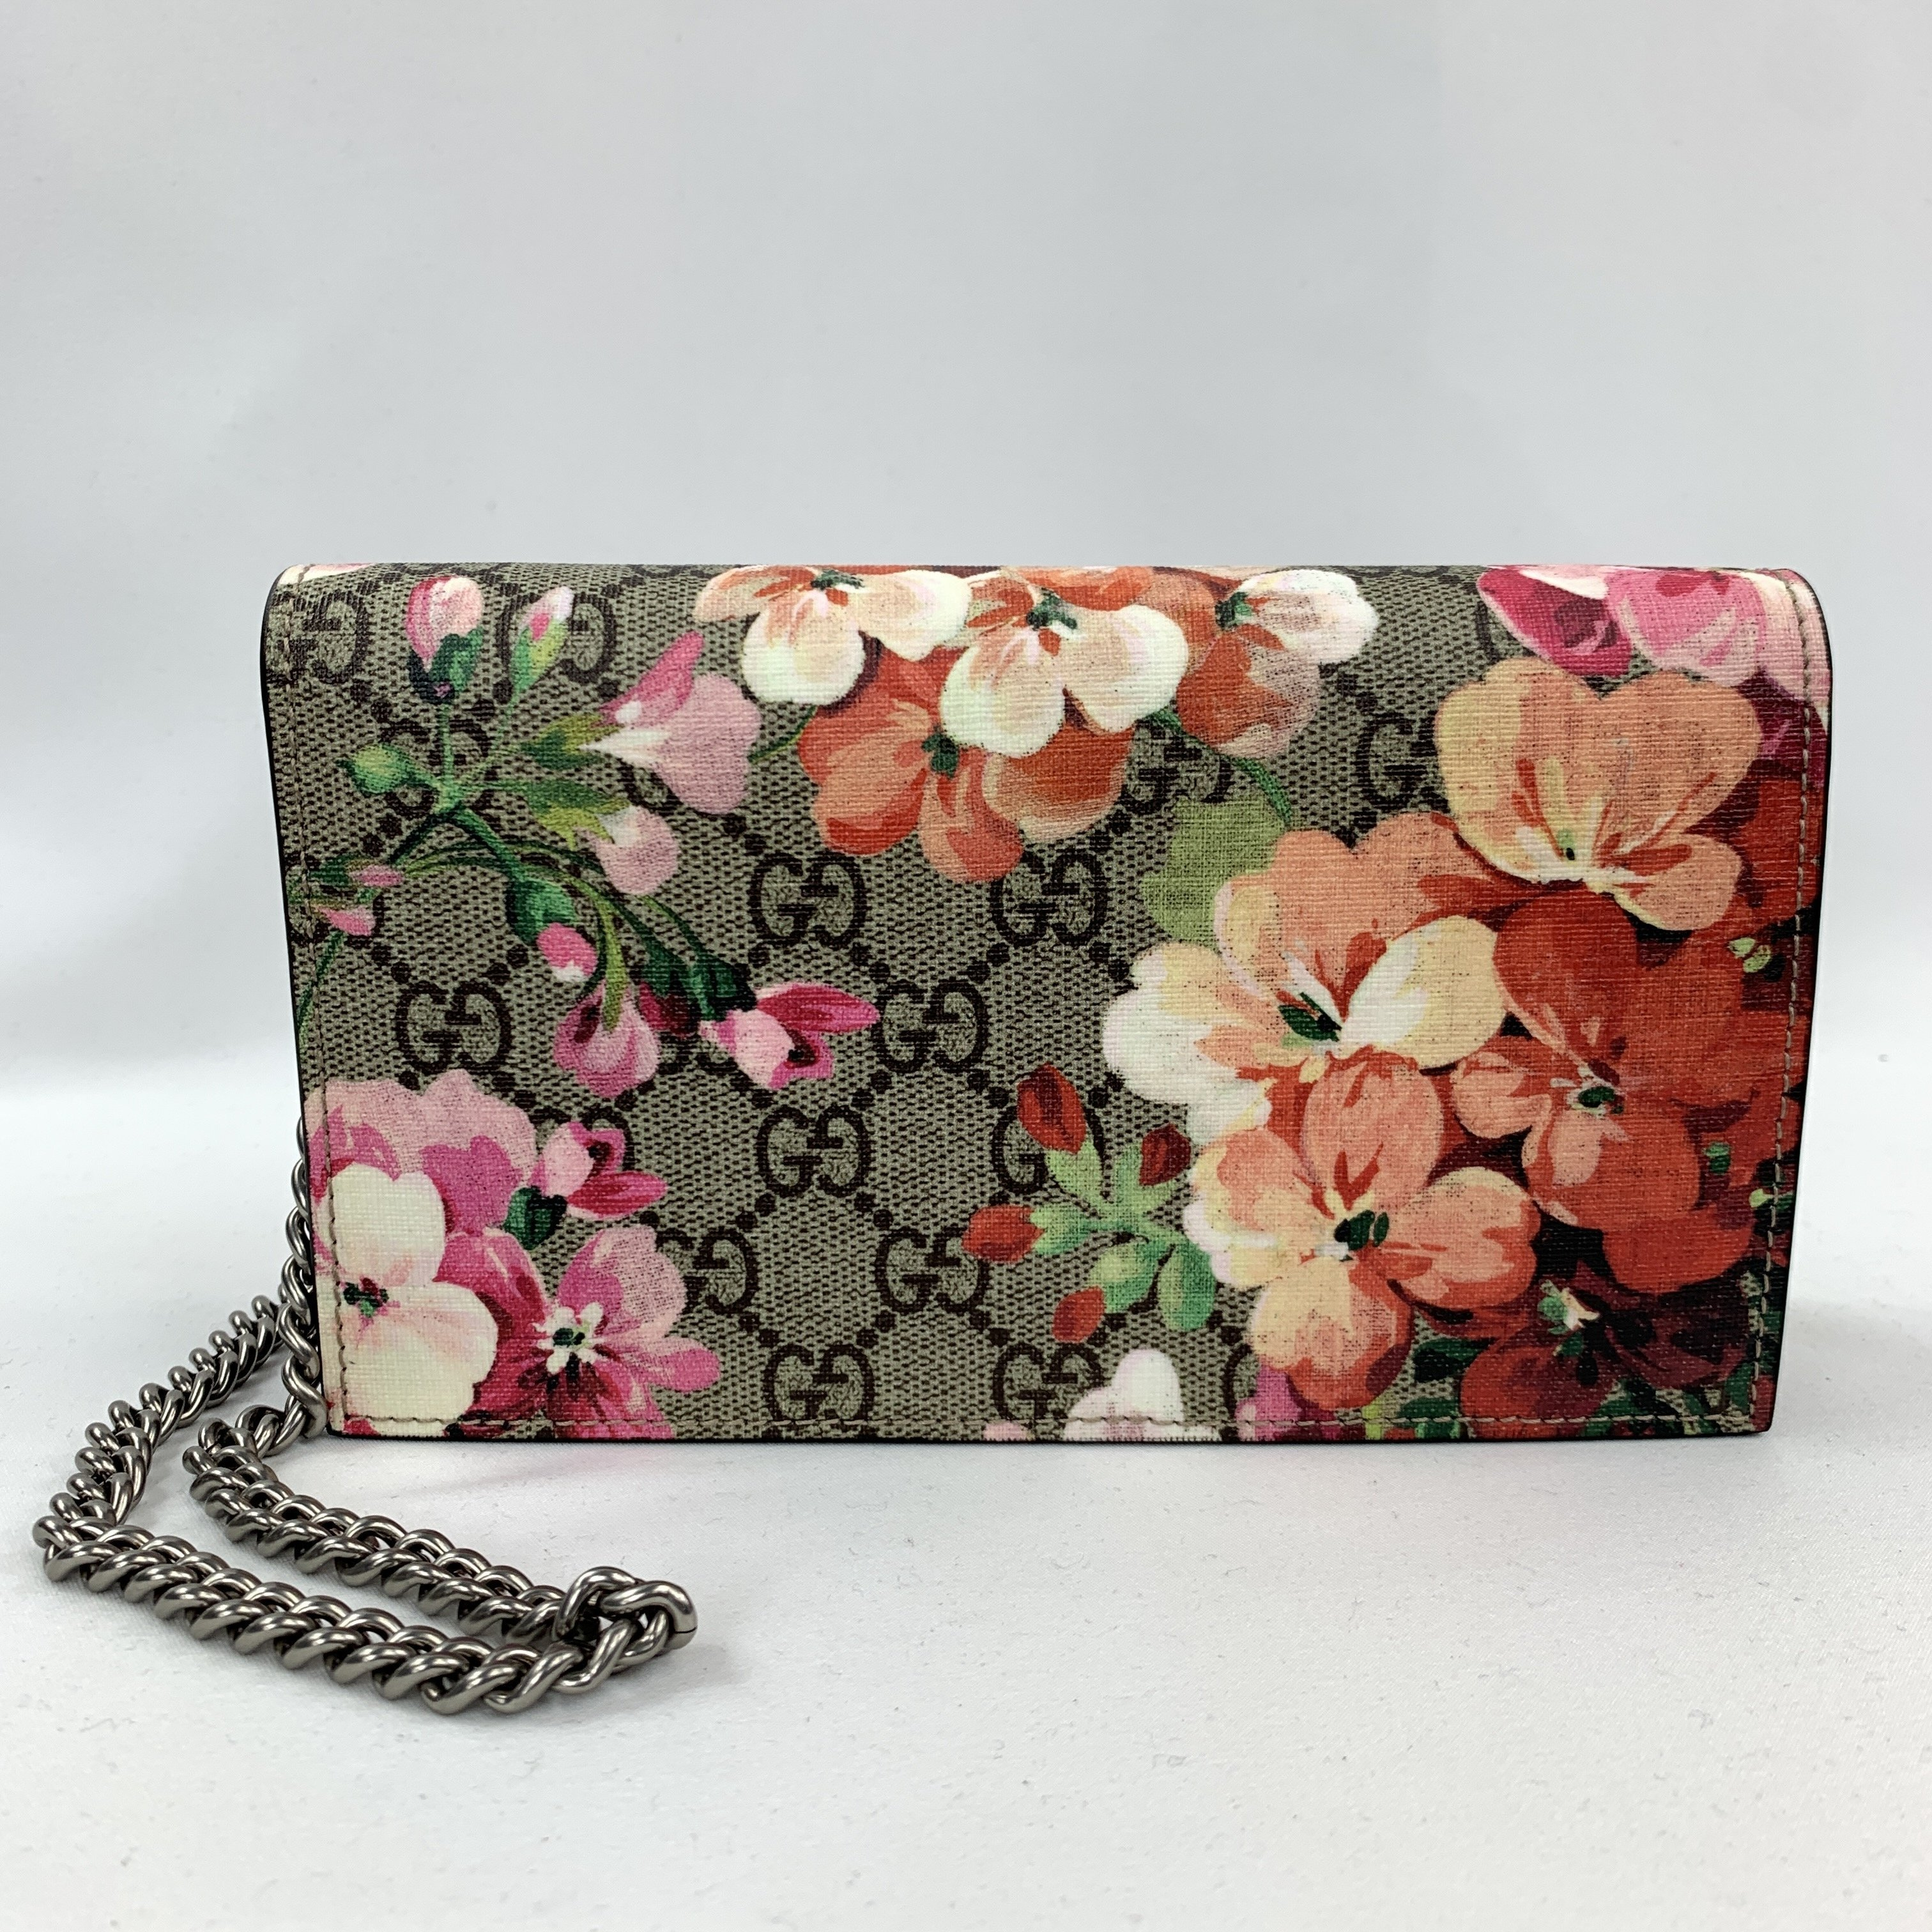 GUCCI Gucci GG Supreme Blooms Wallet on a Chain in Pink